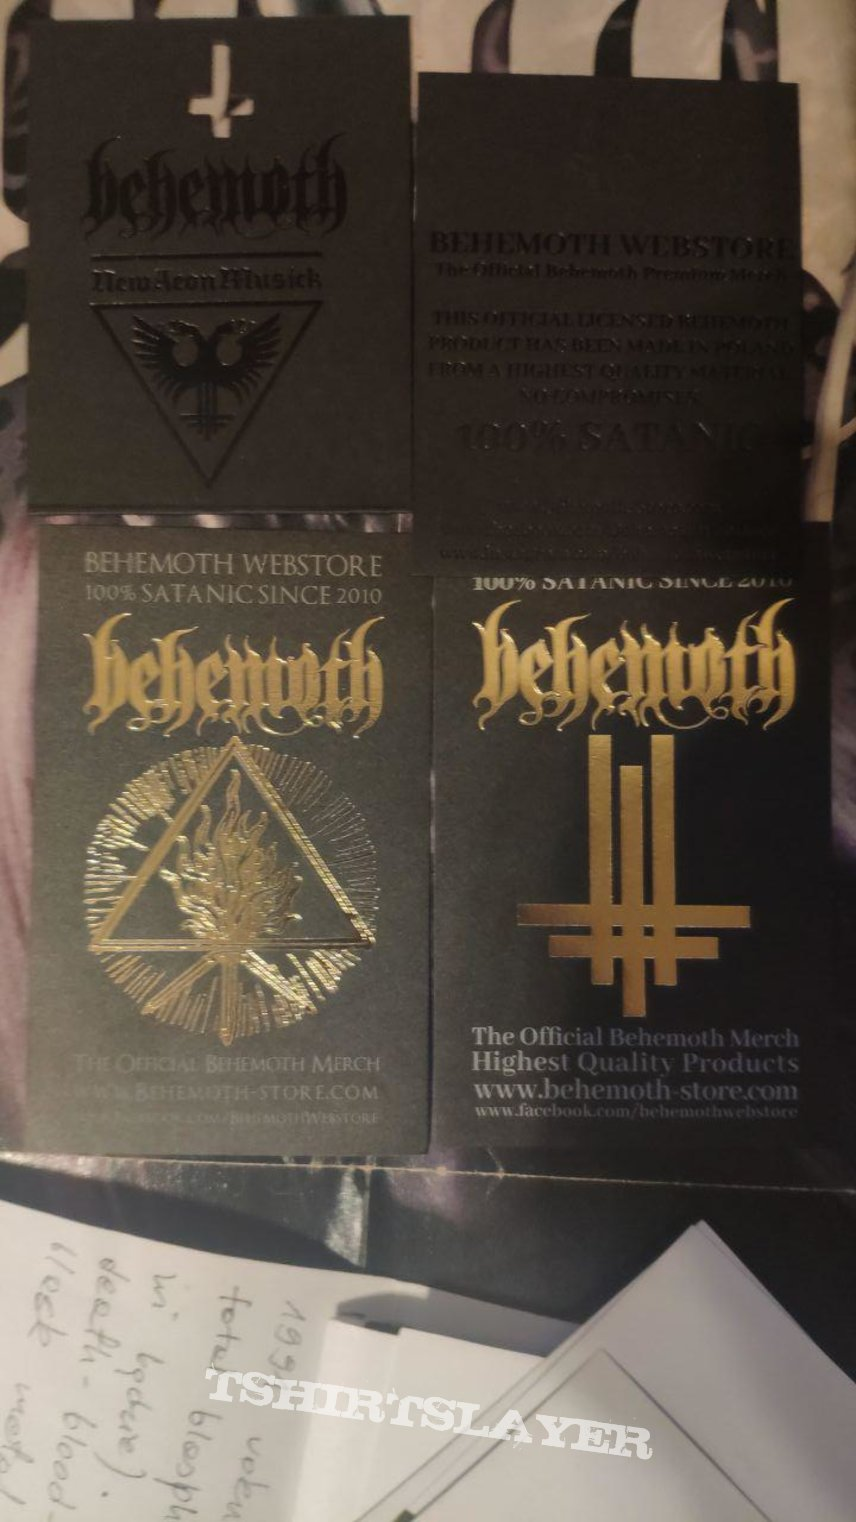 Behemoth - stickers and labels from webstore